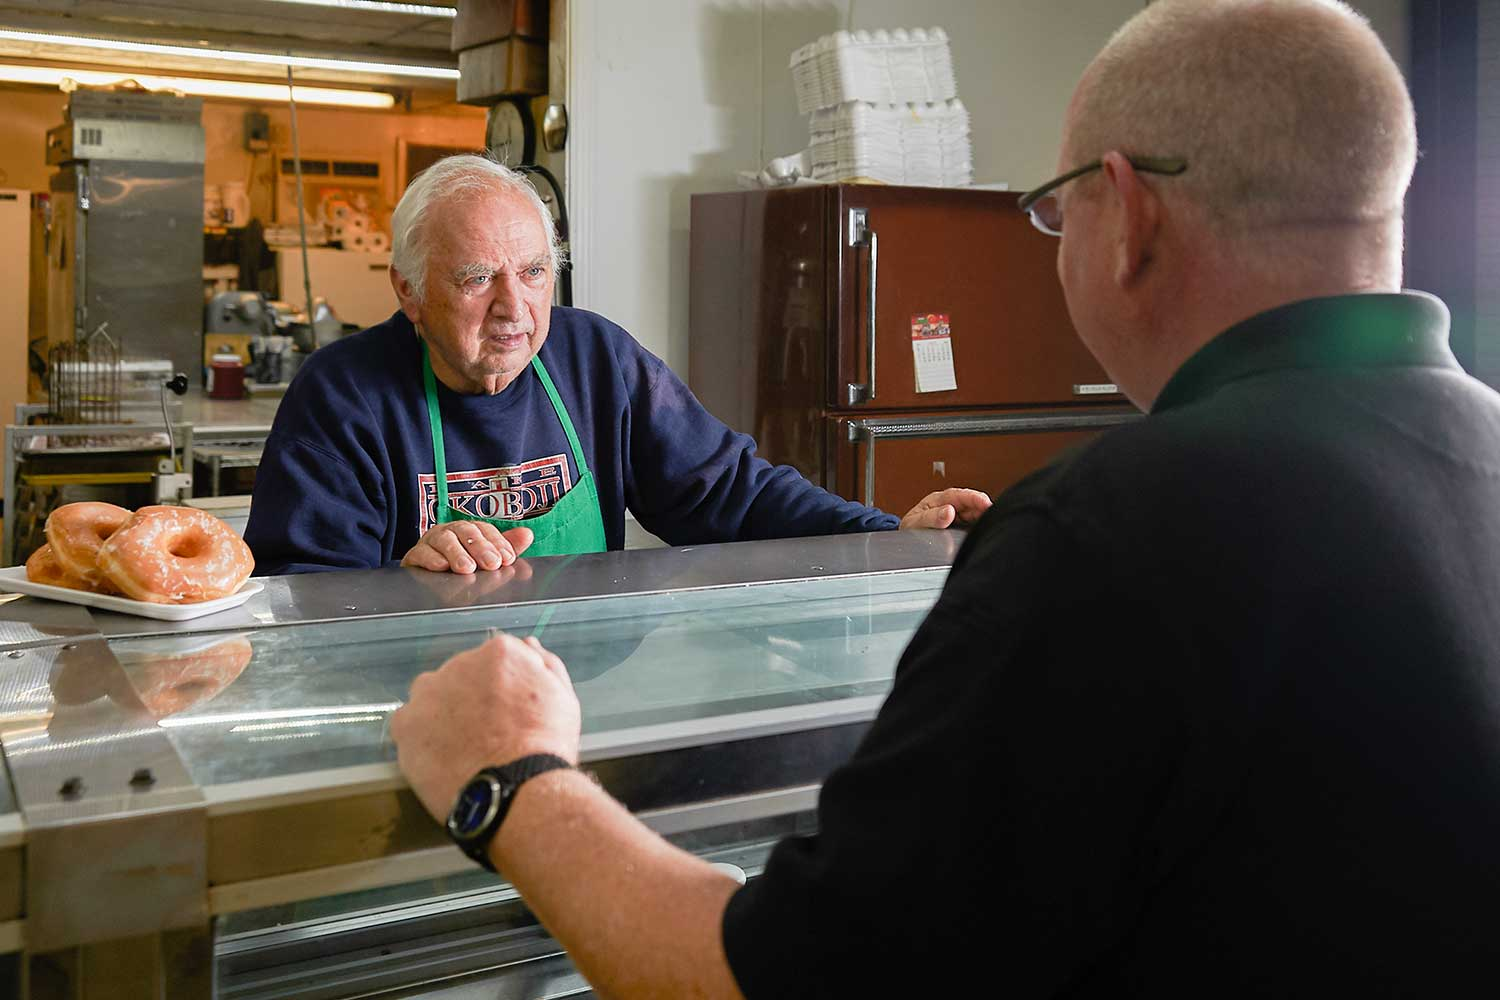 Wilmore Police Officer Sam Hensley stops by the city's lone grocery story, Fitch's IGA, to speak with owner Leonard Fitch.(Photo by Jim Robertson)